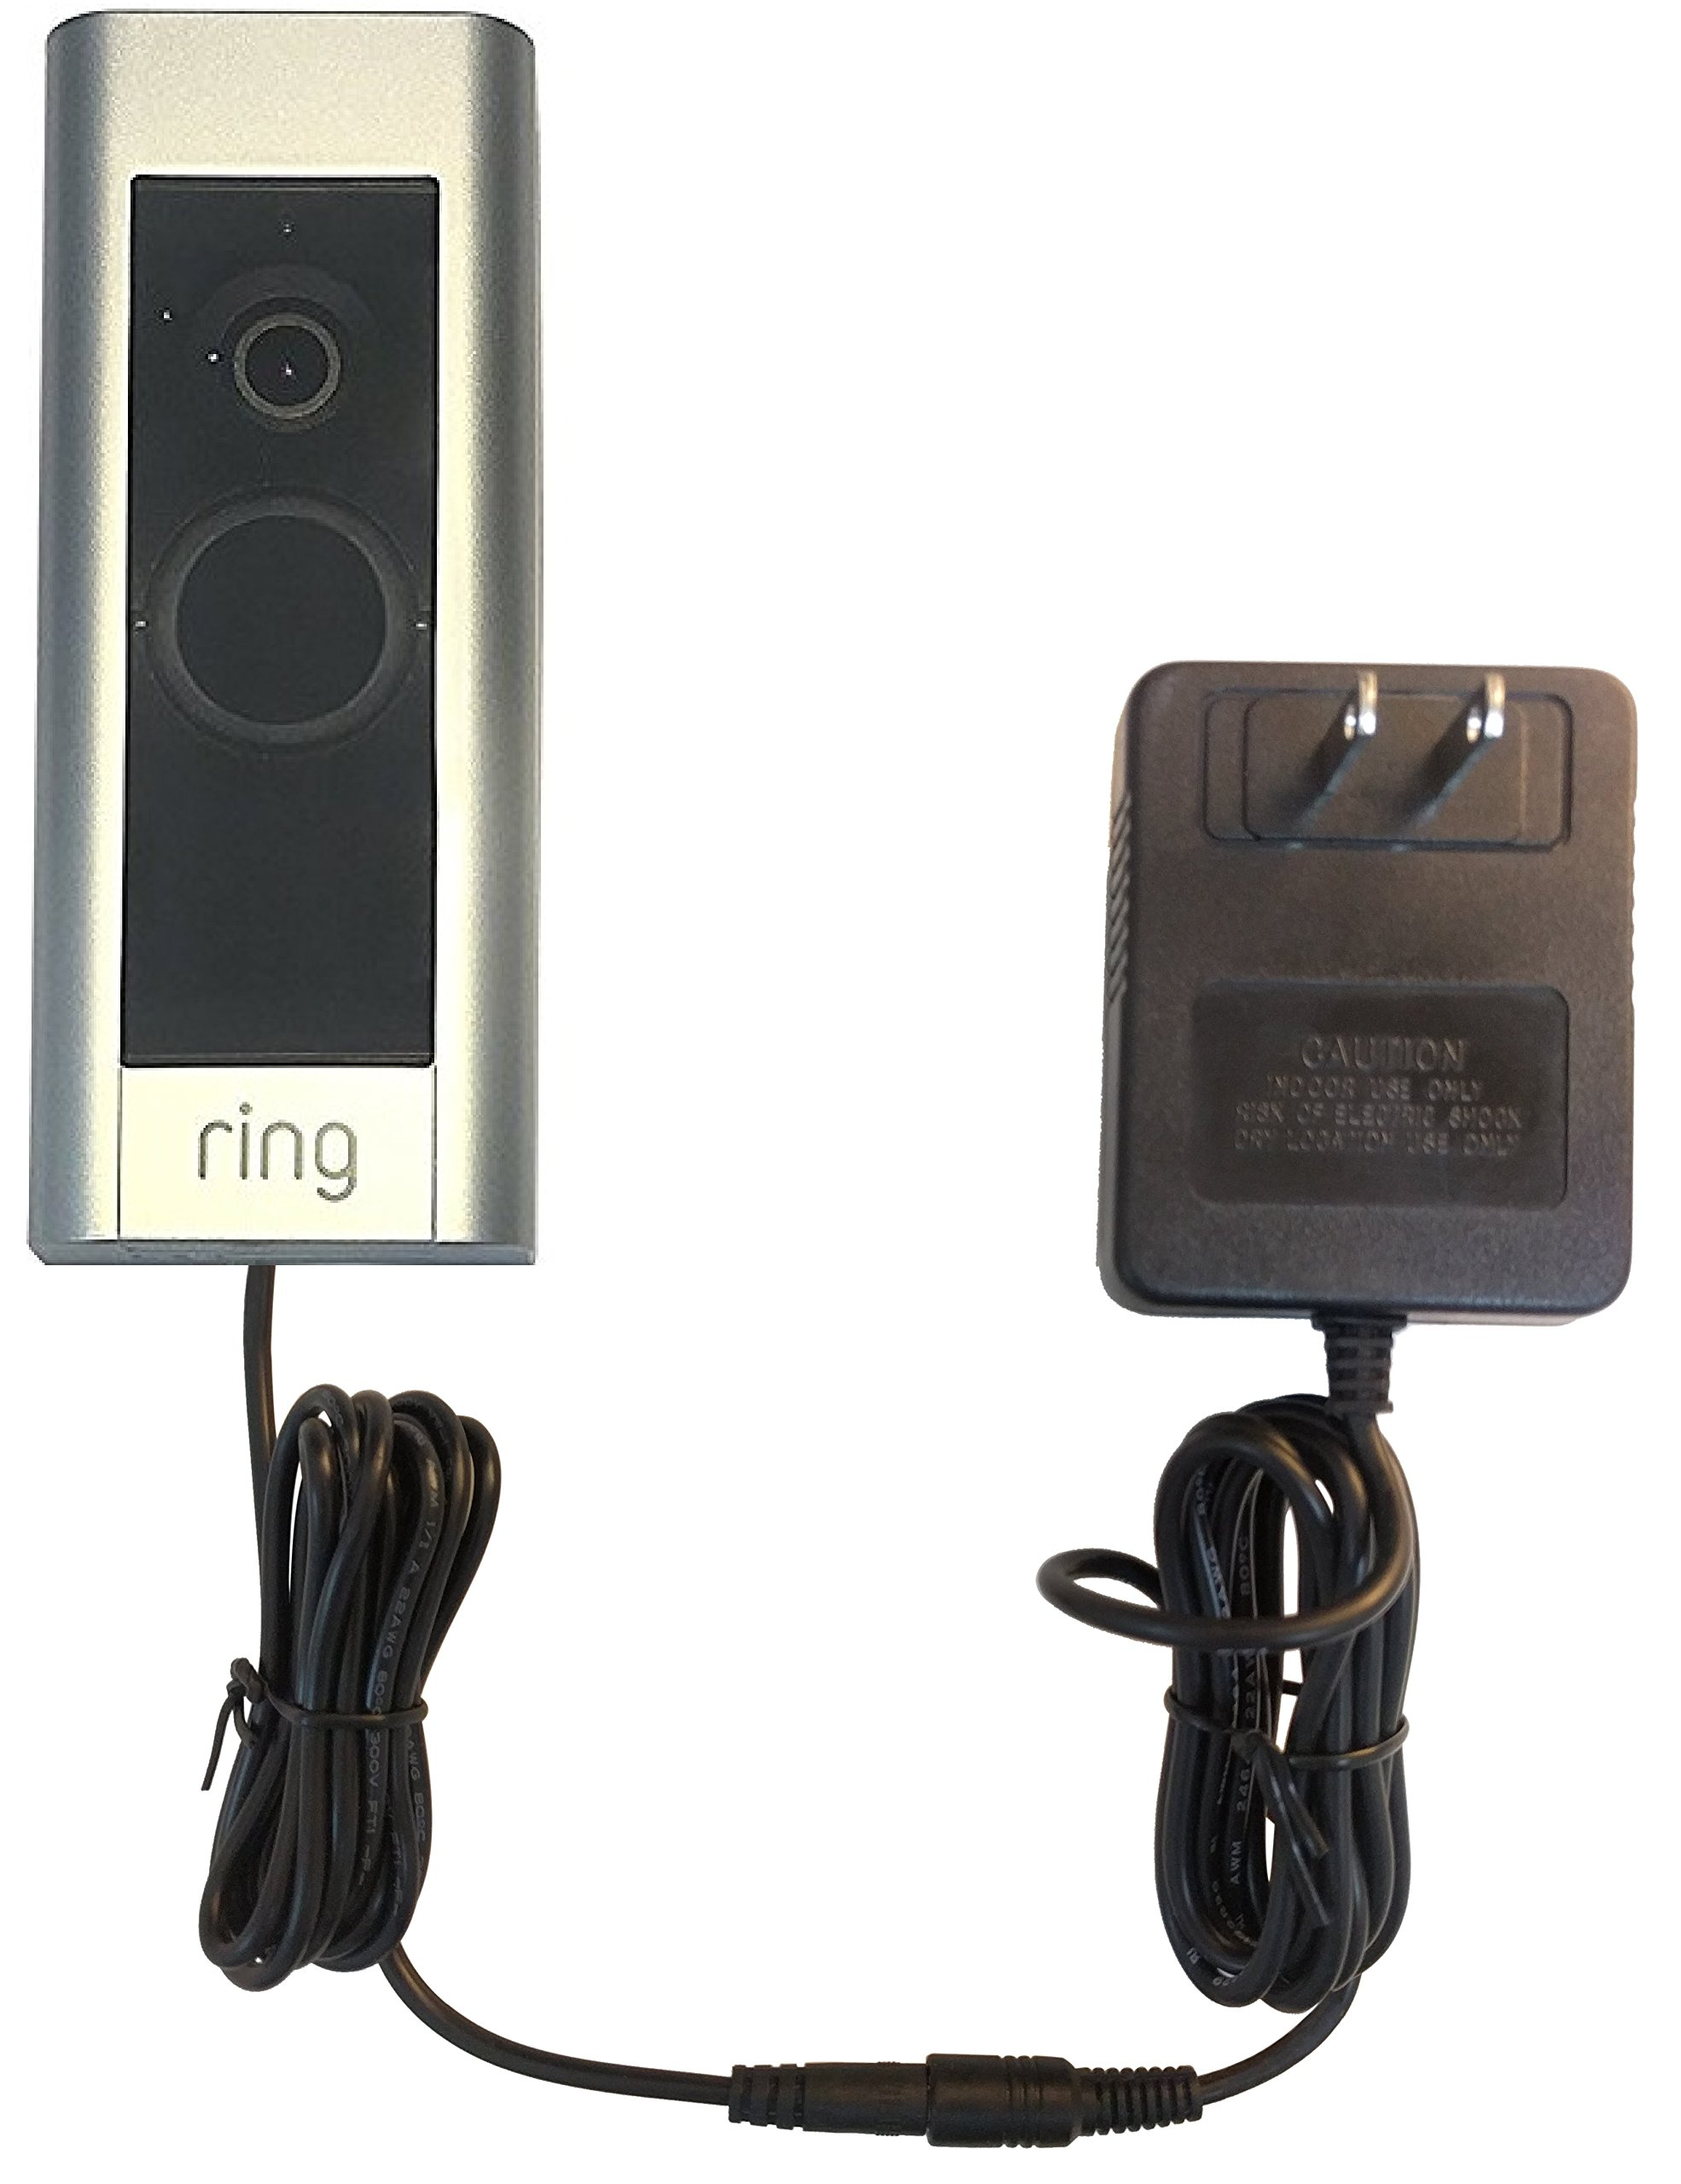 OhmKat Video Doorbell Power Supply - Compatible with Ring Video Doorbell PRO - Needs No Existing Wiring - Transformer, Adapter, Power Kit & Supply All In One